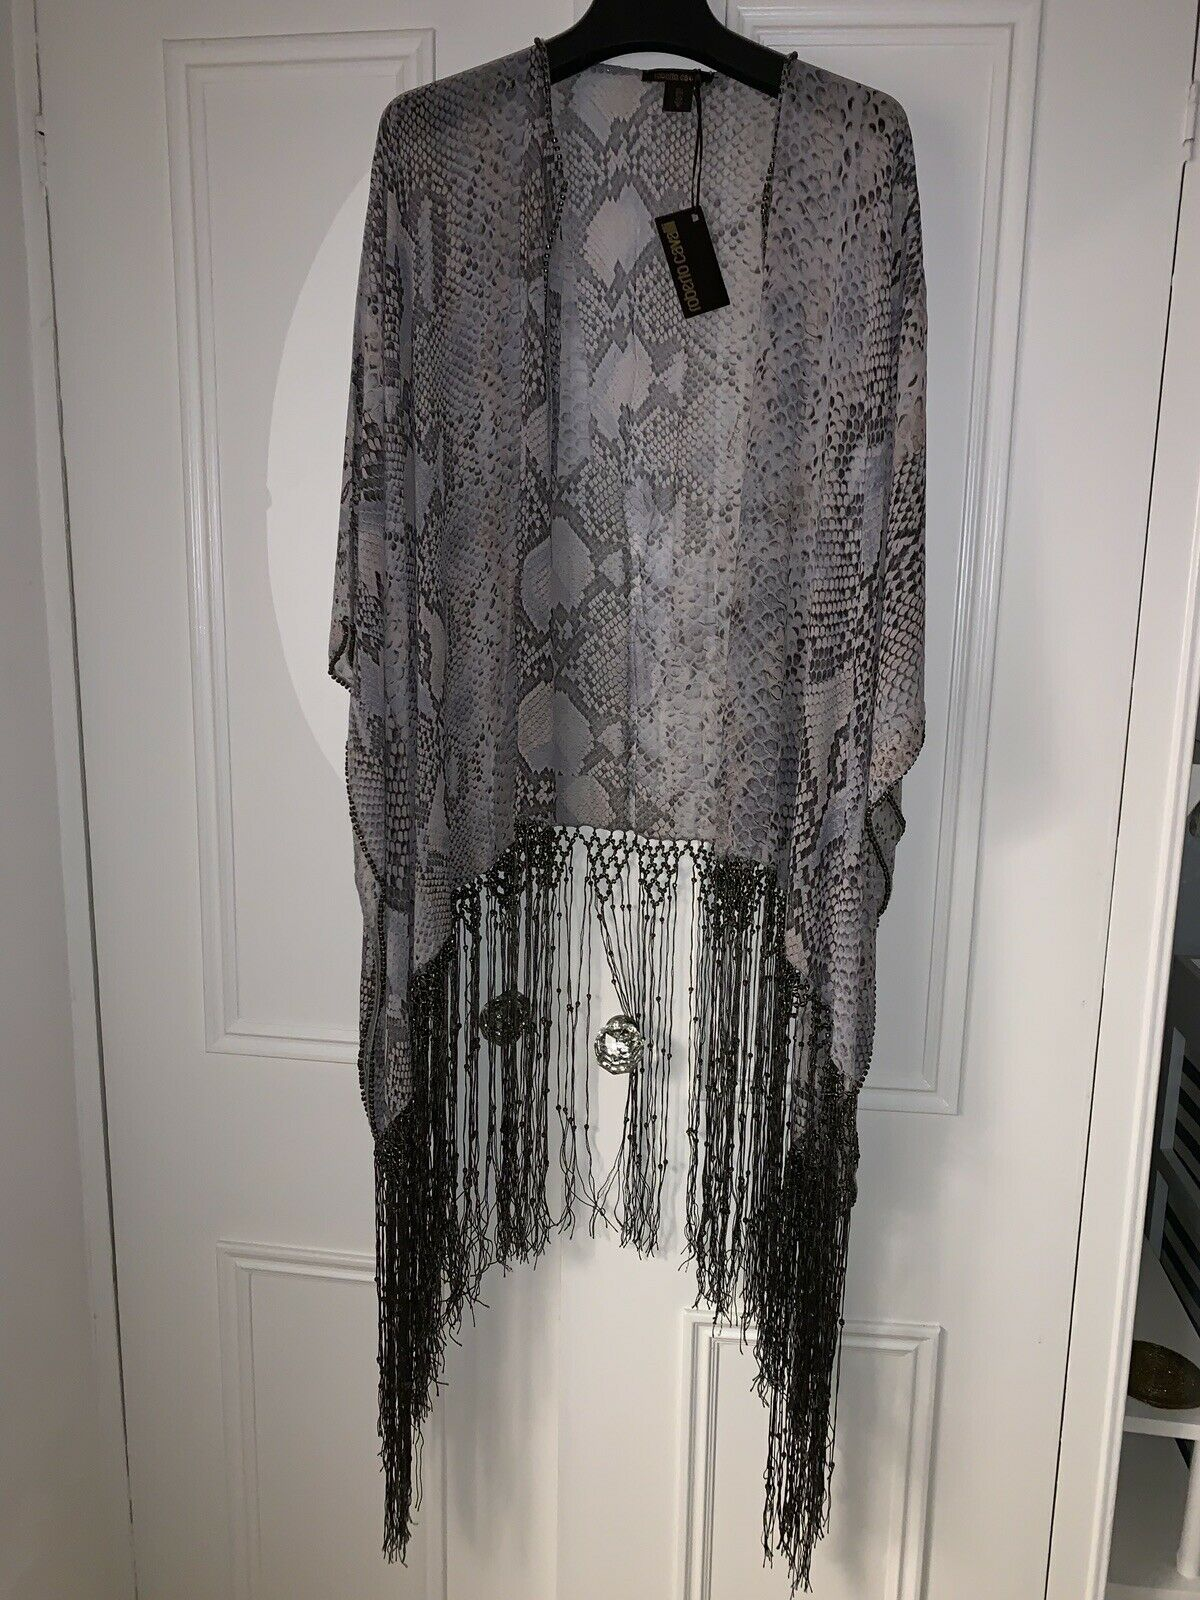 BNWT ROBERTO CAVALLI PURE SILK KAFTAN SHAWL DRESS SNAKE PRINT BEADED FRINGED